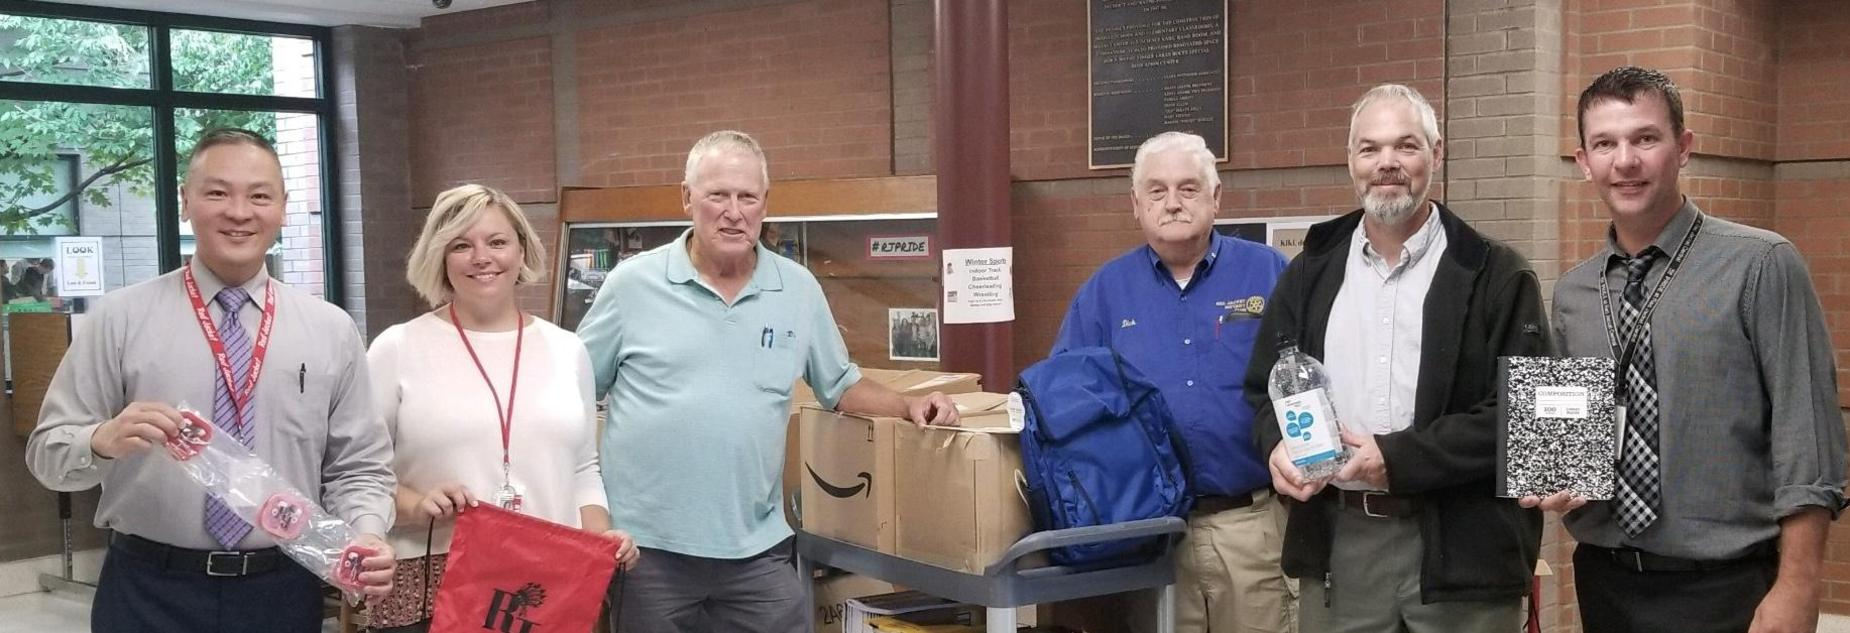 Rotary Annual School supply delivery September 2018